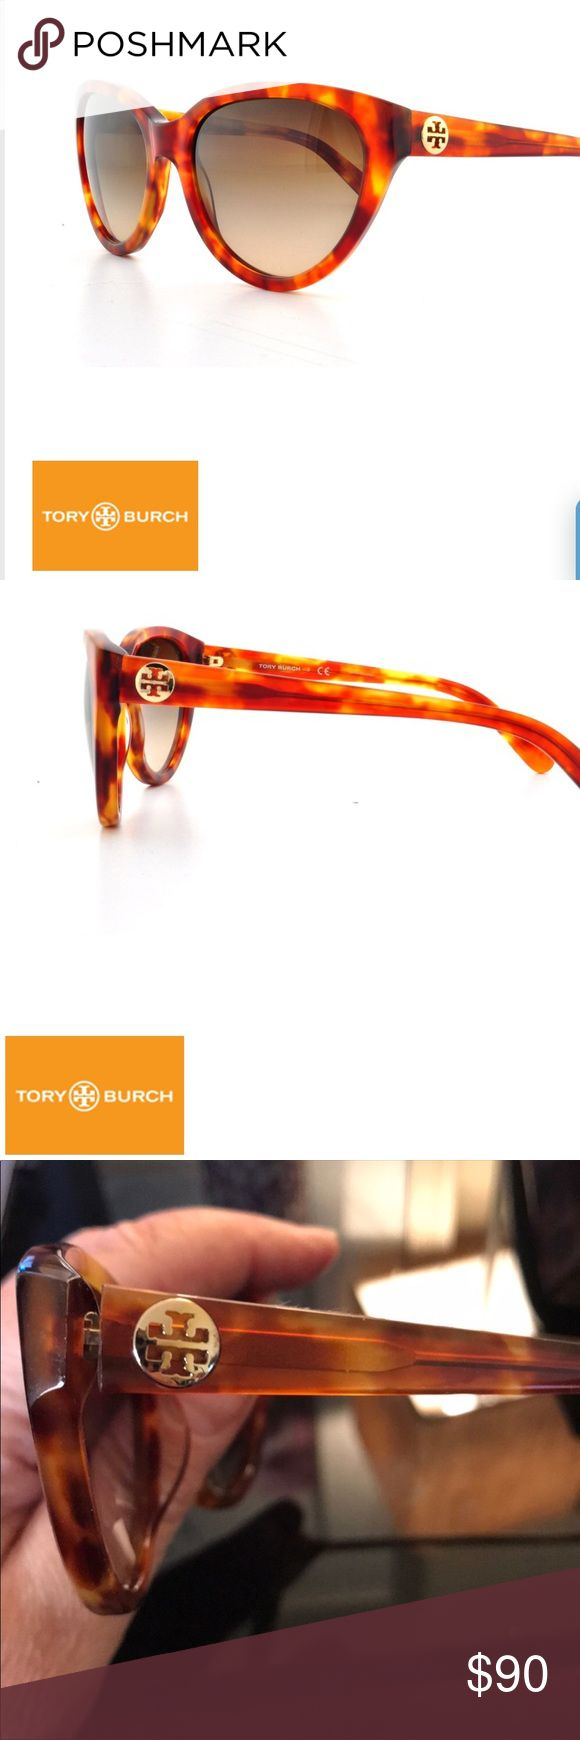 Tory Burch honey tortoise cat eye sunglasses Tory Burch honey tortoise cat eye sunglasses Cute and on trend cat eye sunglasses, smaller frame with gold logo detail on arm band! Frames fit wide.   BRAND: Tory Burch MODEL: TY7045 COLOR: 503/13 Honey Tortois